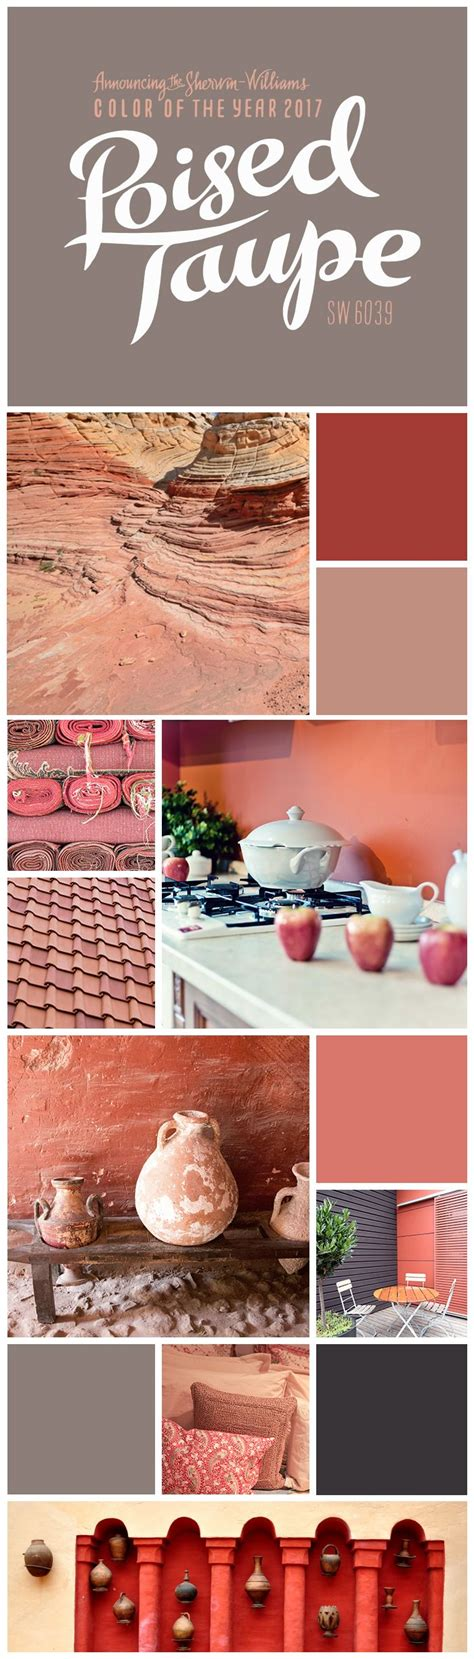 poised taupe color schemes 102 best images about paint color of the year on pinterest